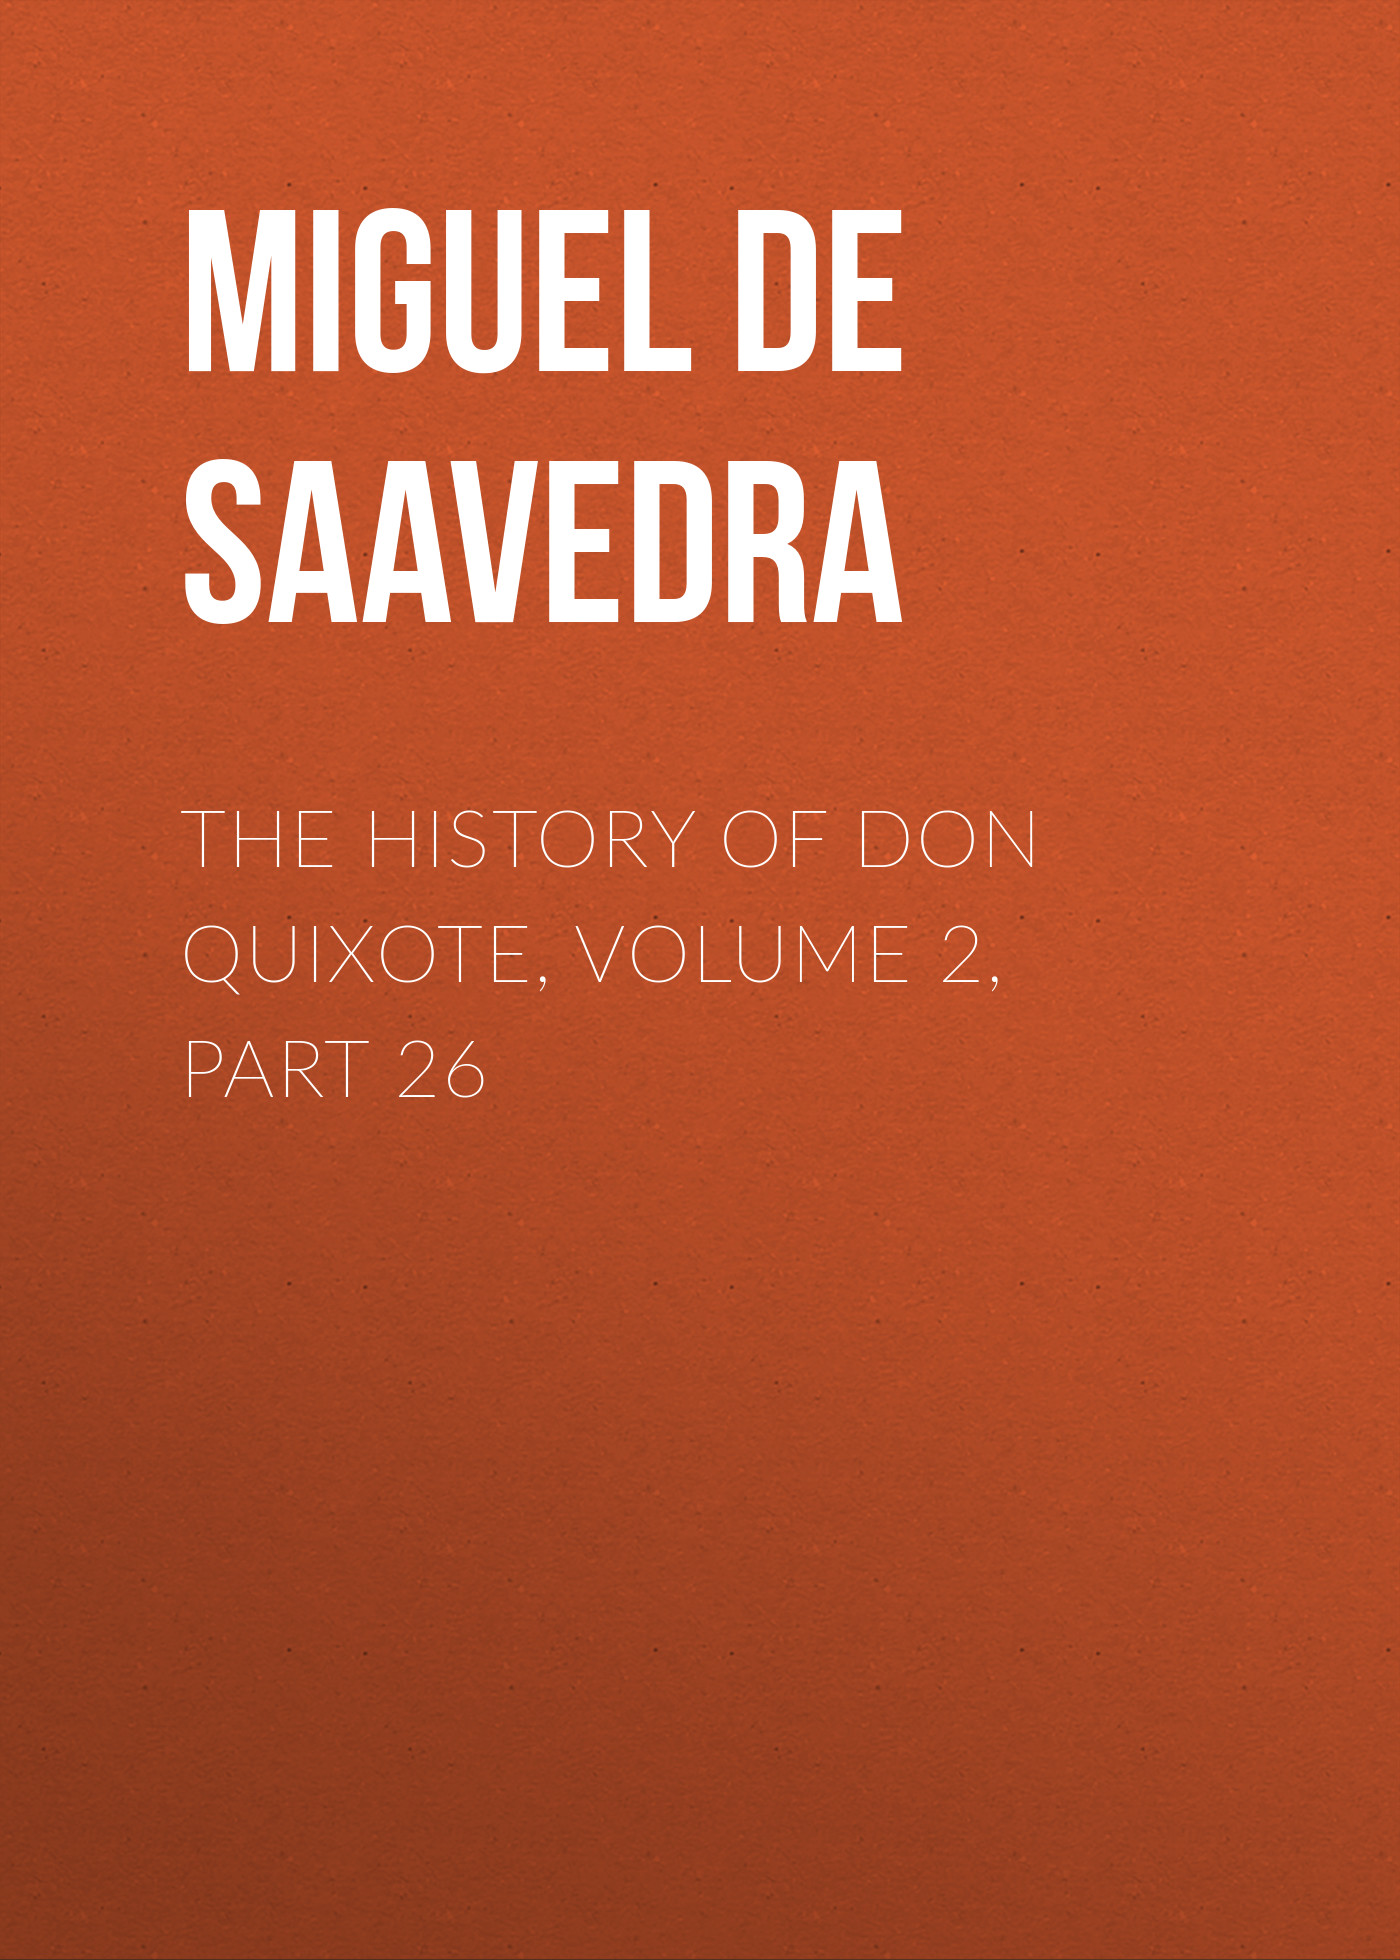 the history of don quixote volume 2 part 26